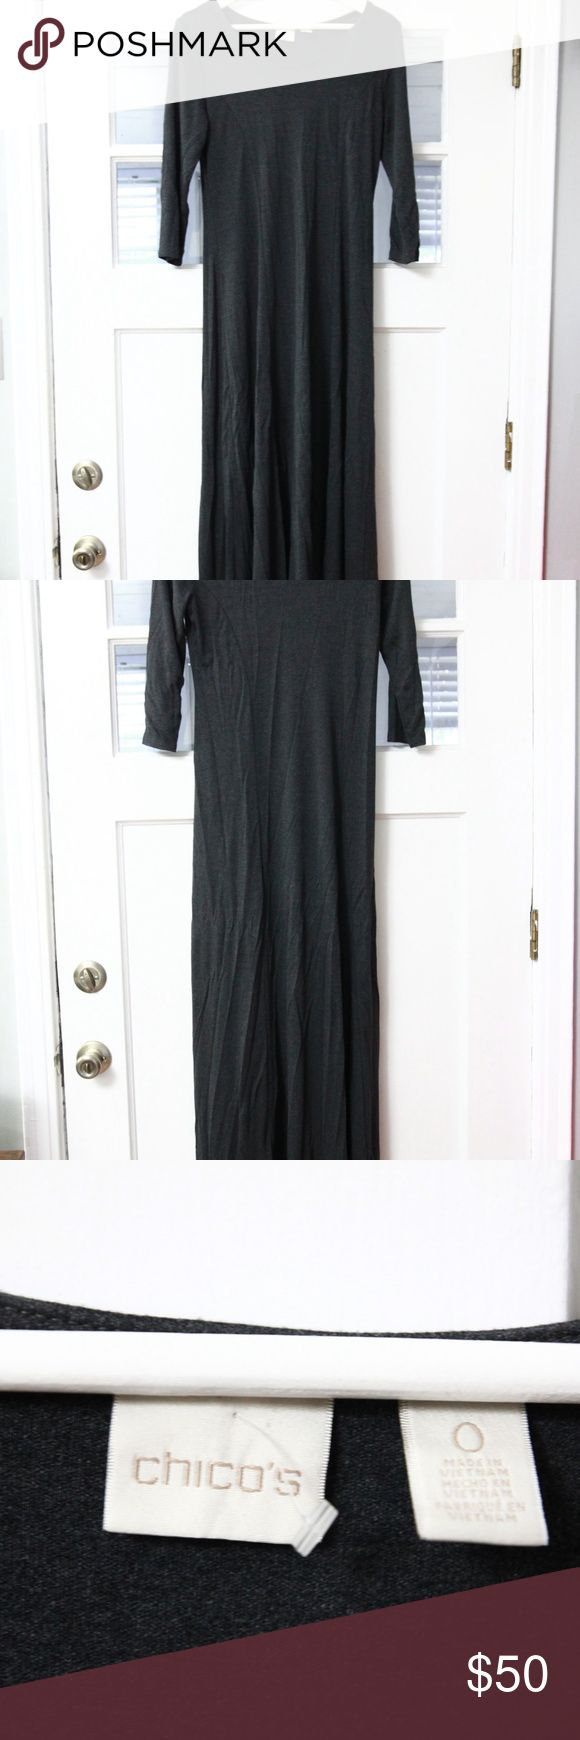 Chico's Hi Low Maxi Dress Sz 0 Small Gray Jersey Chico's hi low maxi dress in size 0/small. Rayon 95%, spandex 5%, machine wash.  Measurements Bust 40 inches Length 59 inches down mid back  inventory 12-107 Chico's Dresses Maxi